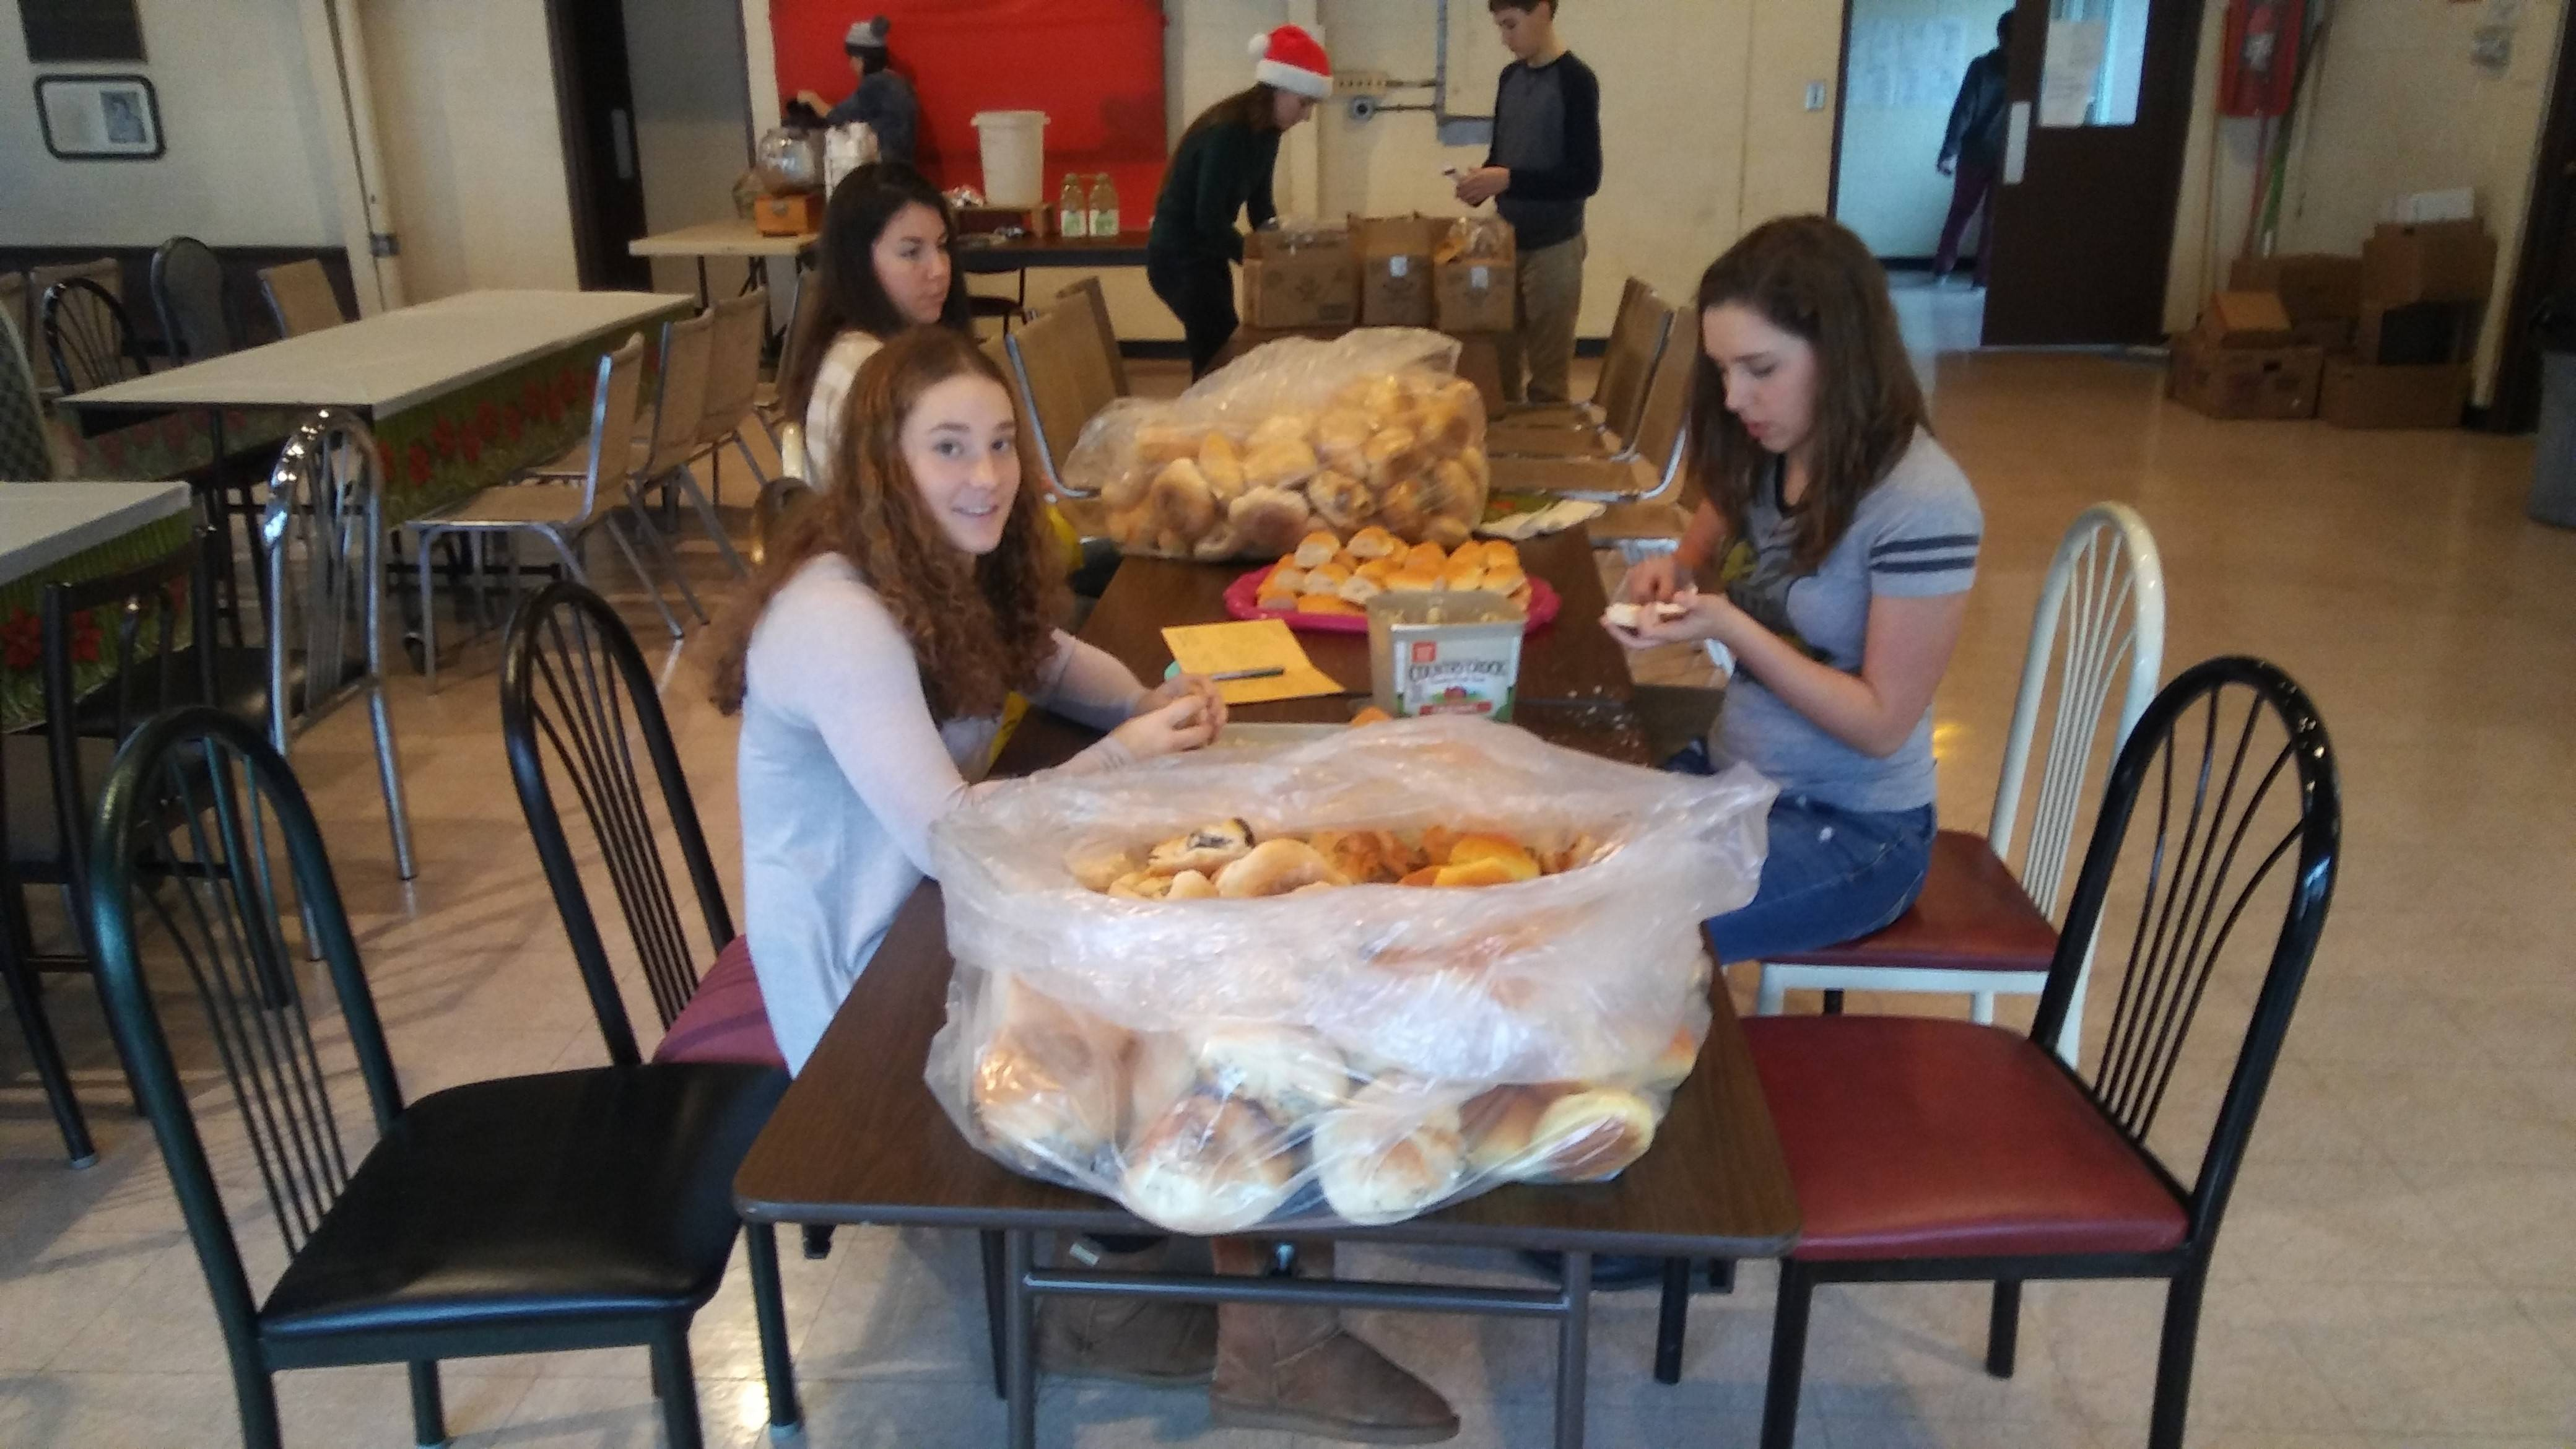 06129b6b396337141d68_The_First_Pres_Cranford_Youth_Group_buttering_bread_for_dinner.jpg